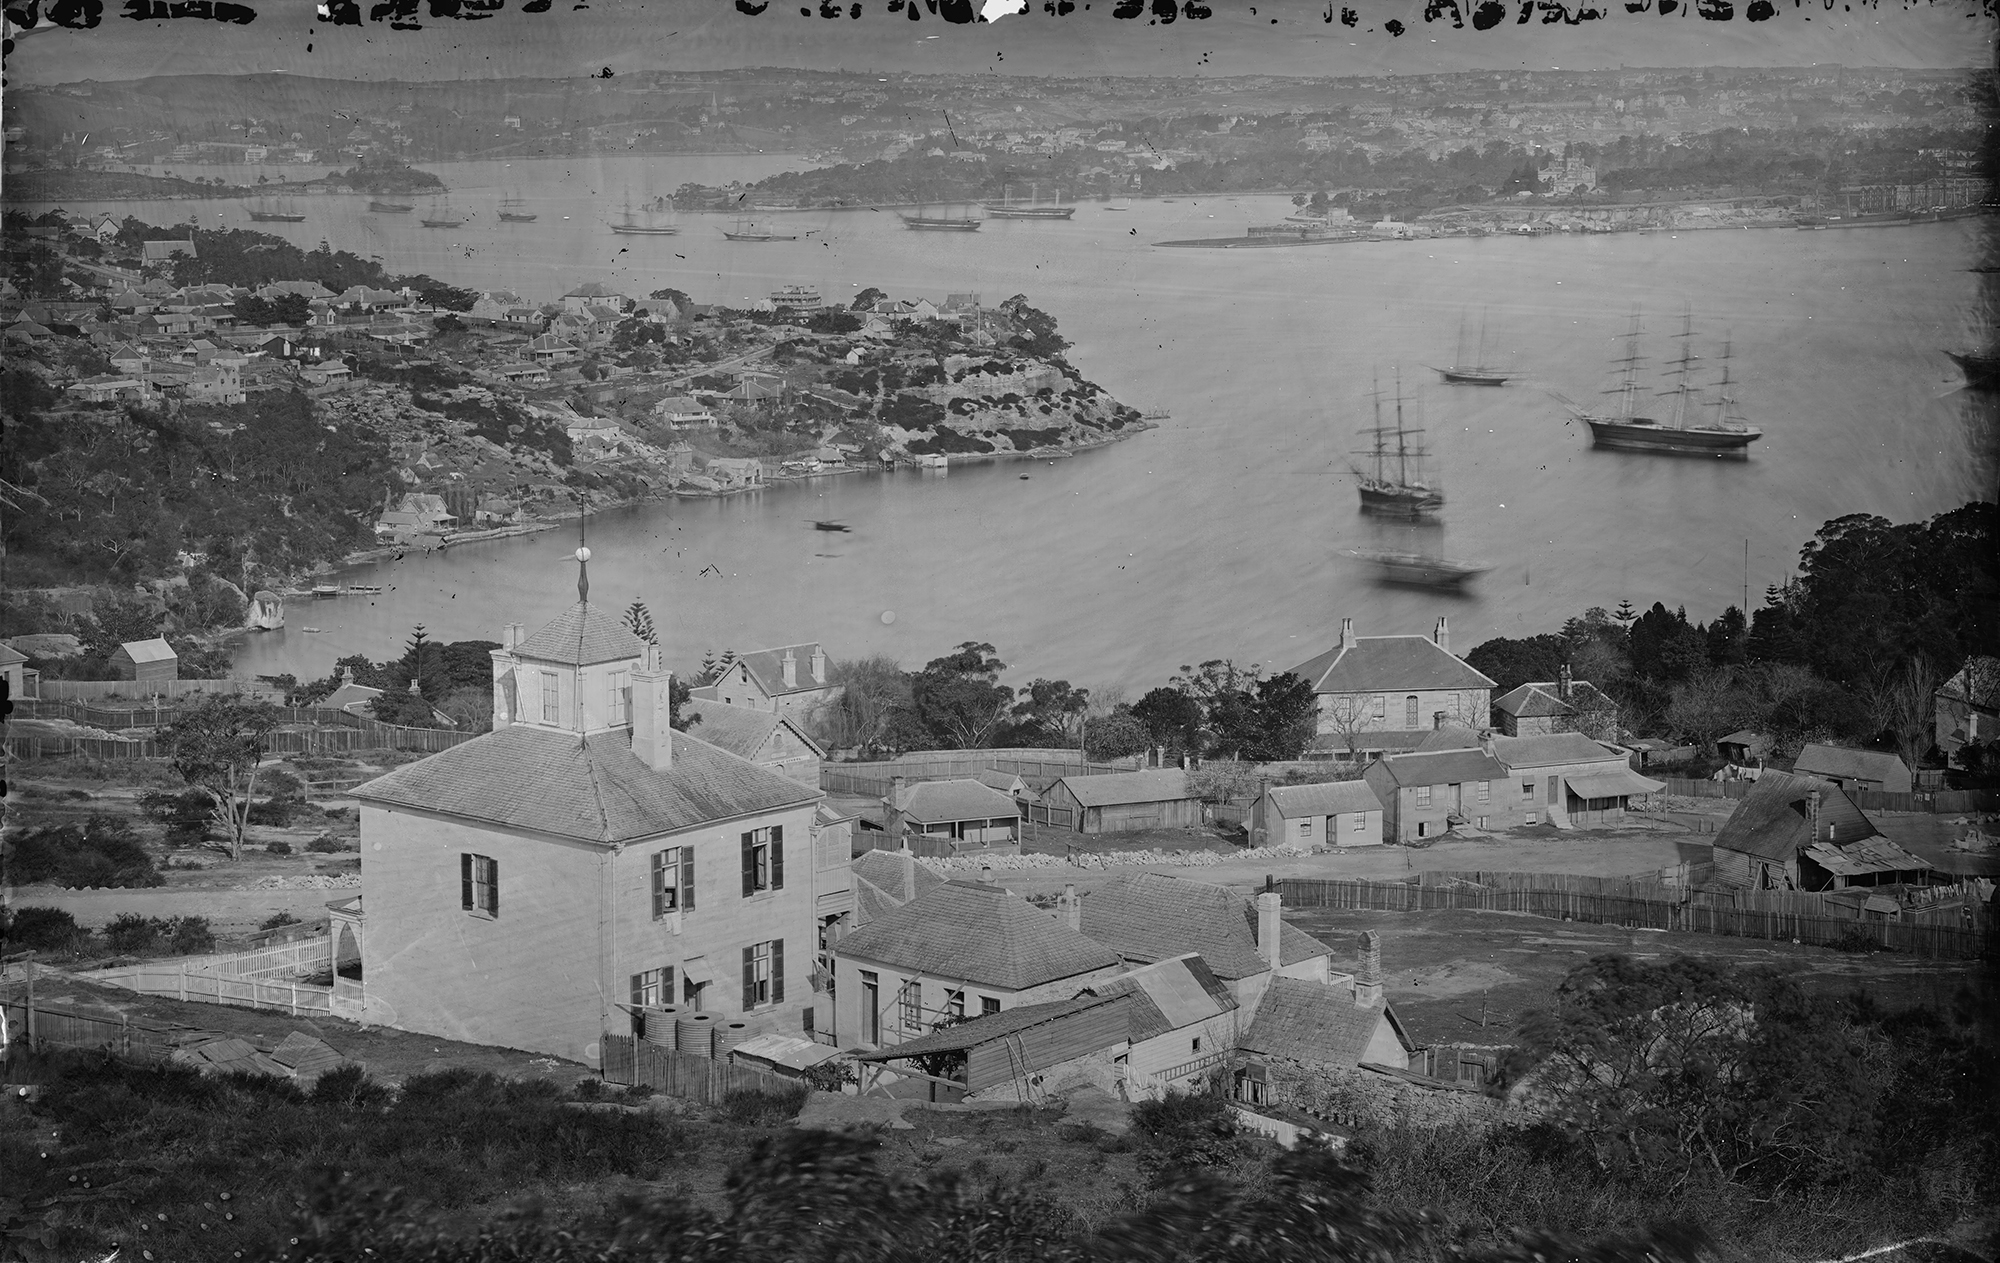 Restored panorama of Sydney from the Holtermann collection.